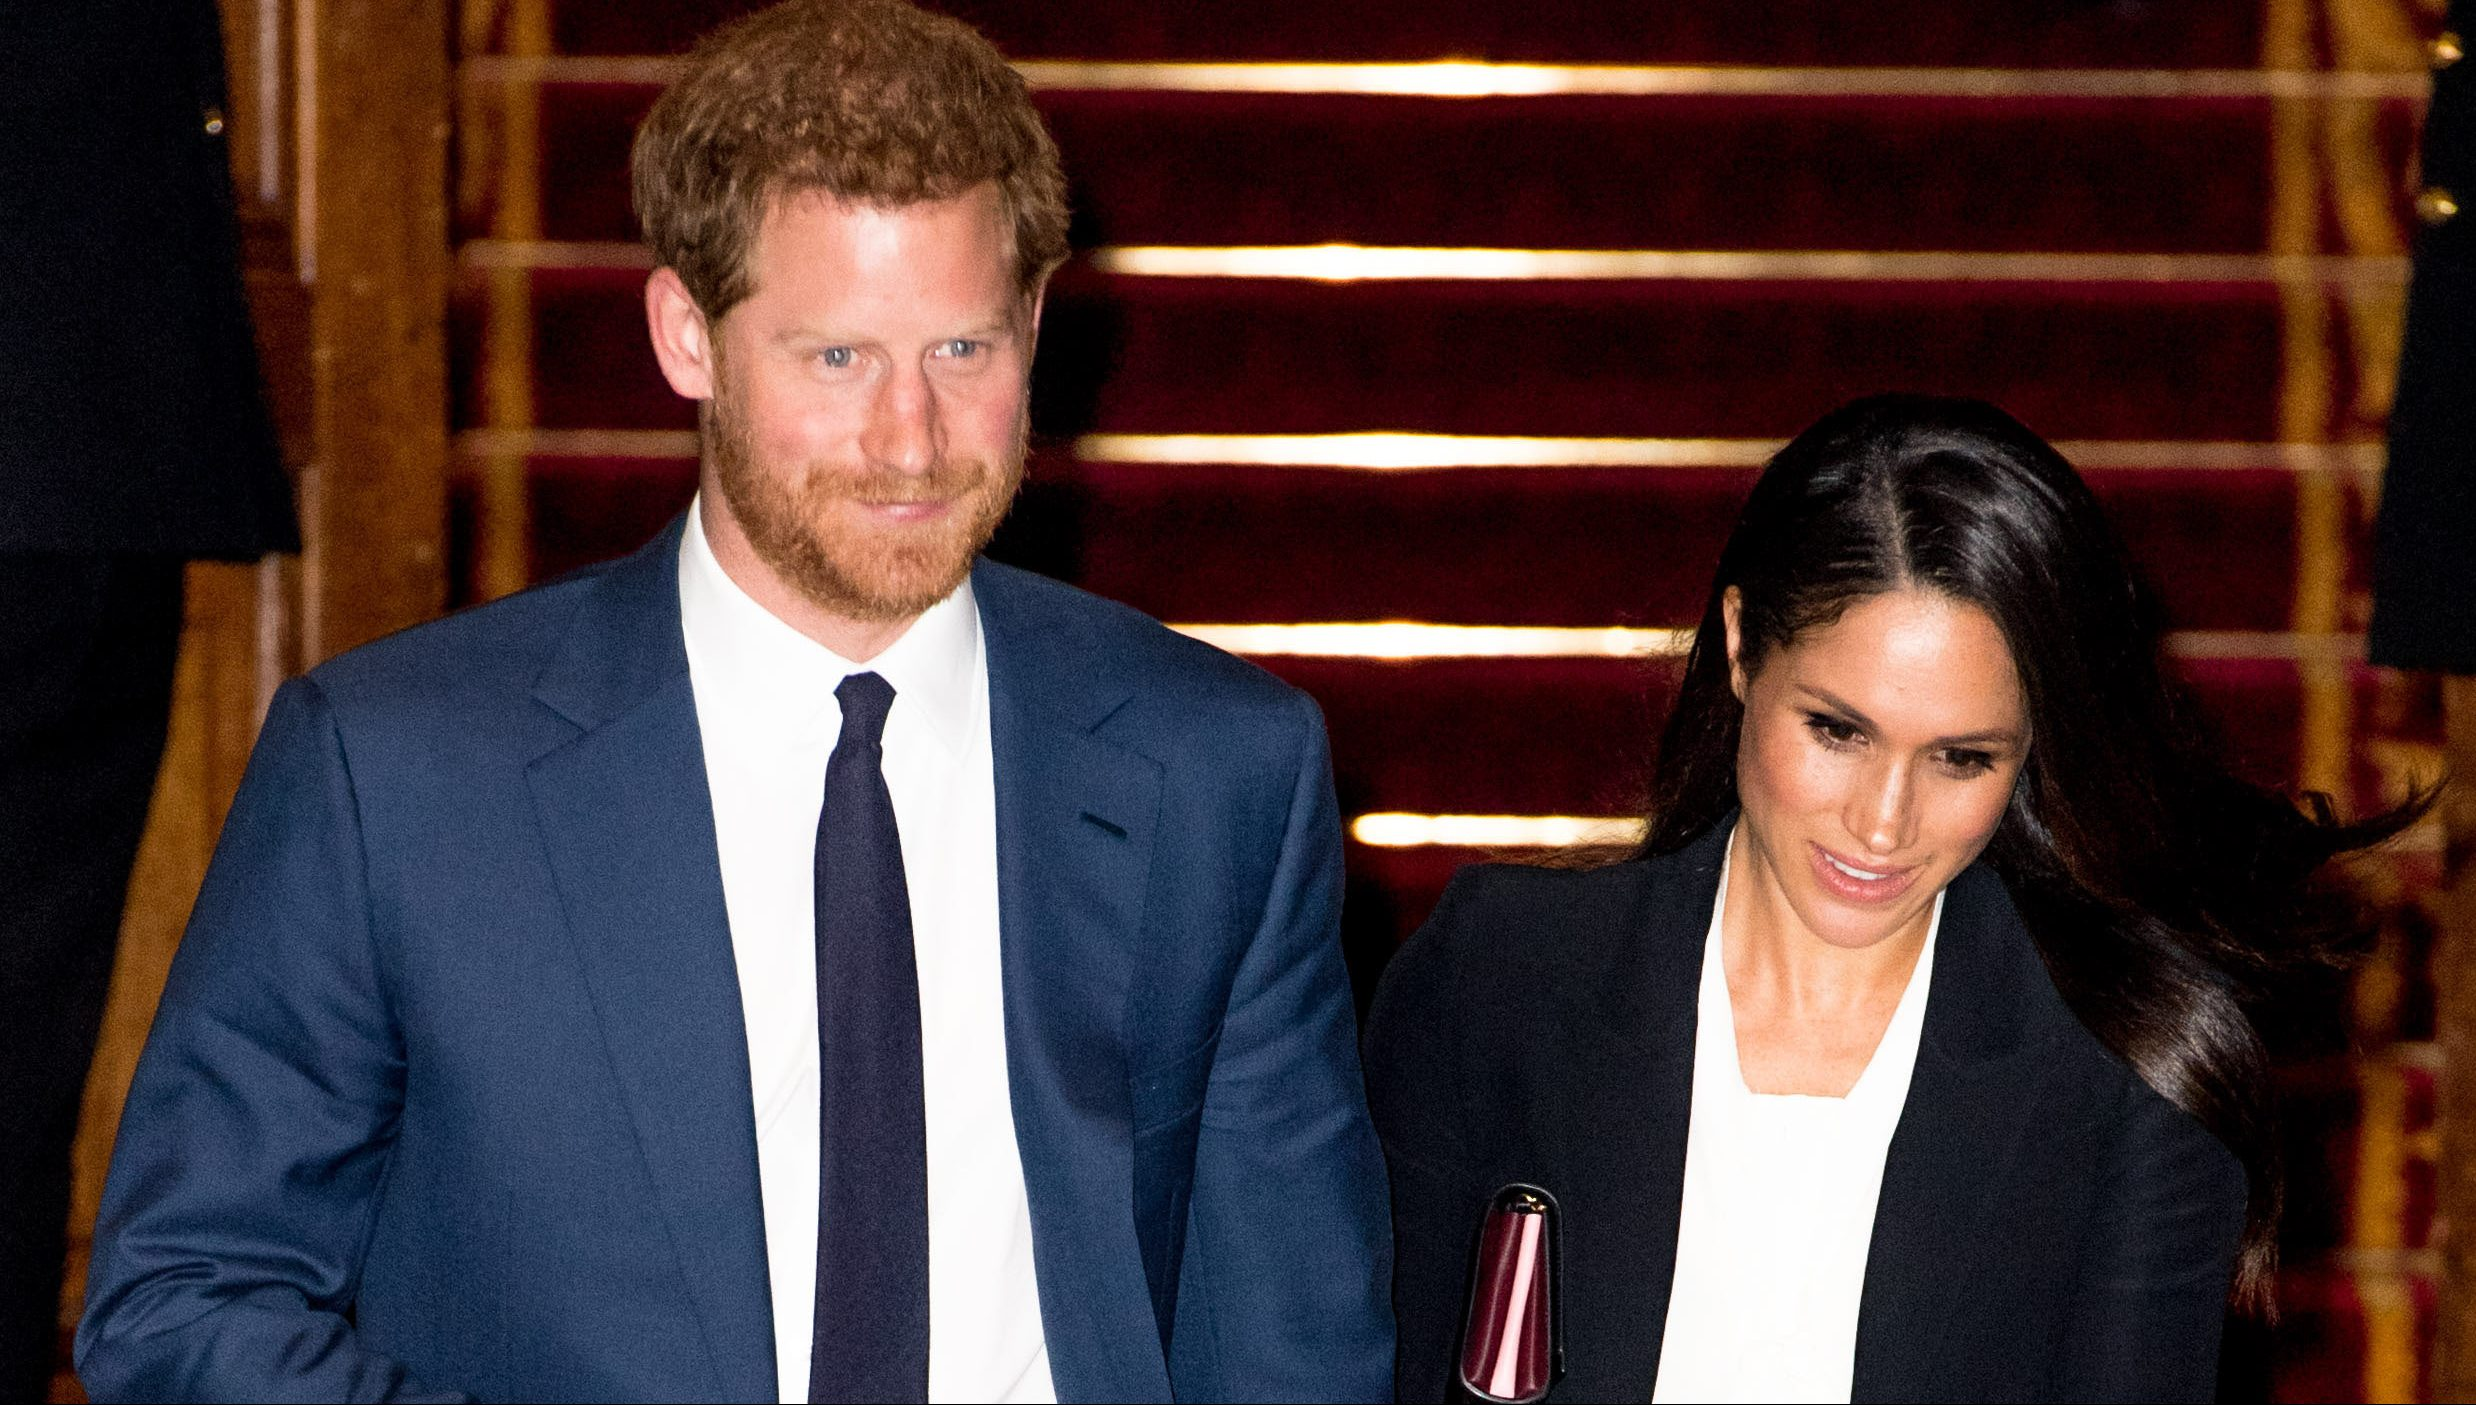 Confidante reveals it was 'made clear' Harry and Meghan 'weren't really part of new slimmed-down monarchy'